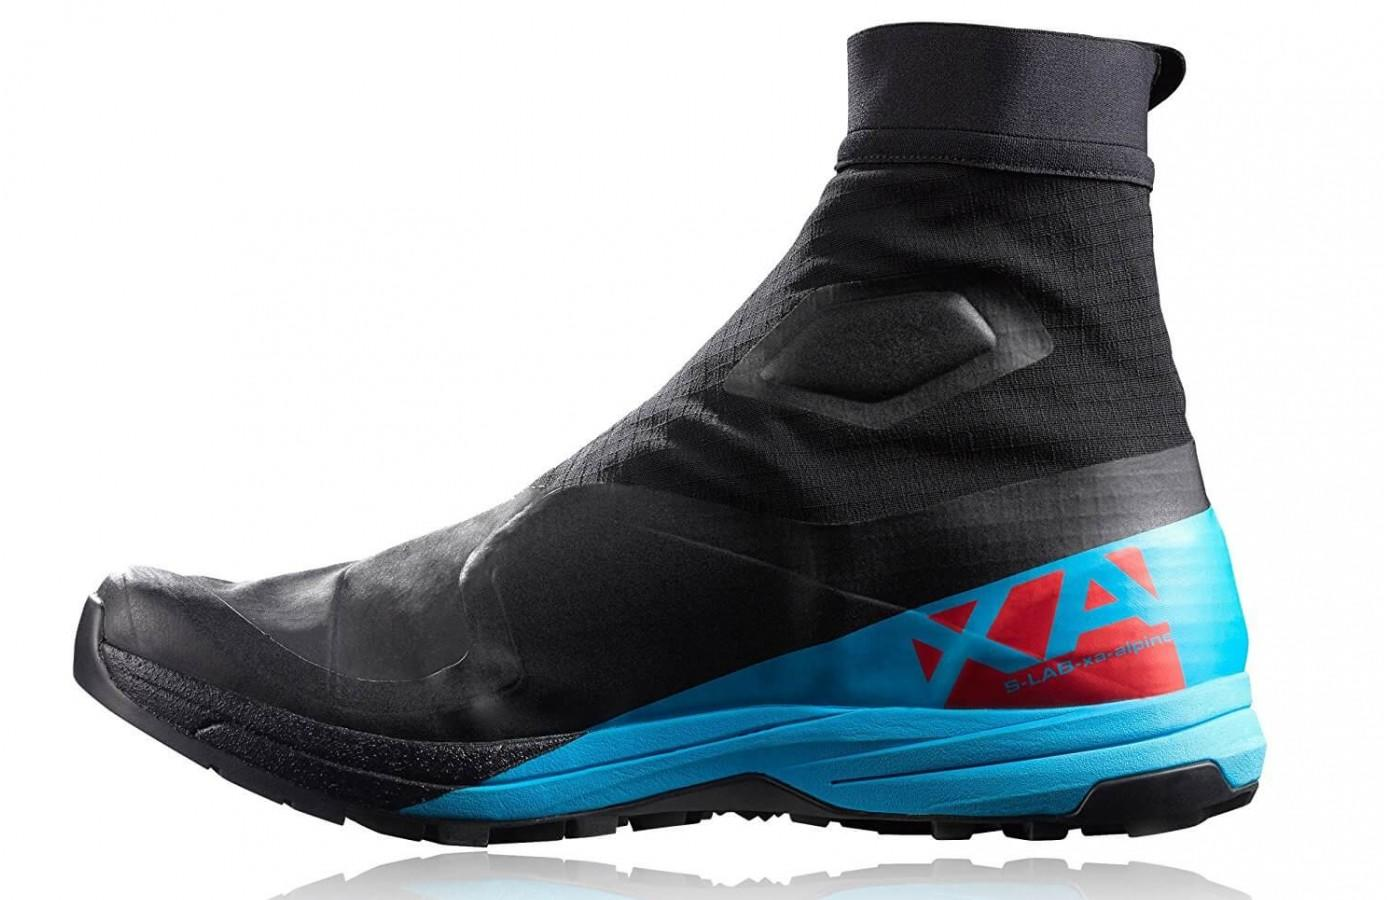 the Salomon S-Lab XA Alpine is made for aggressive adventures in the great outdoors